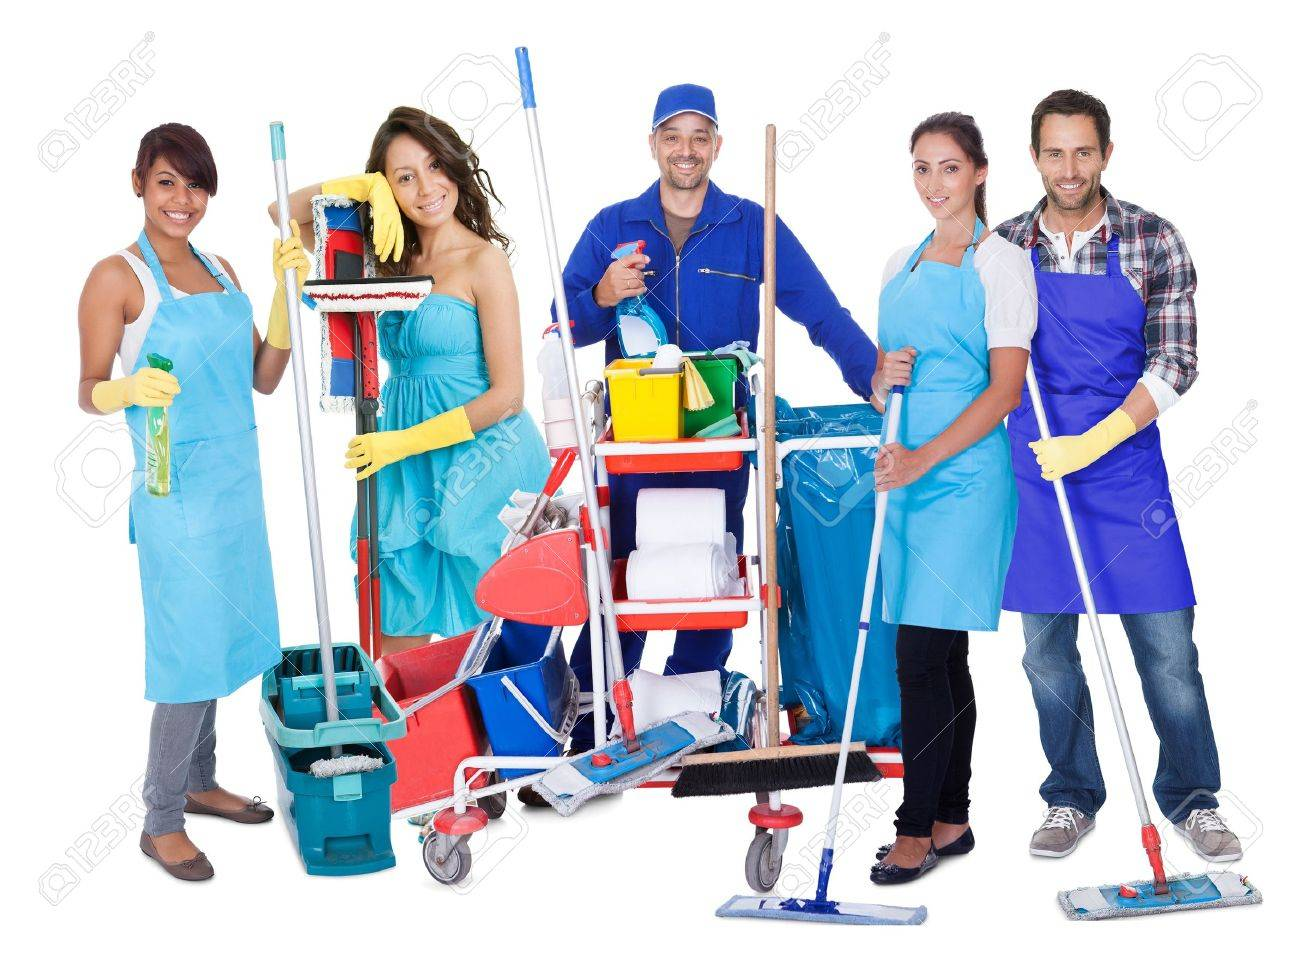 CLEANERS NEEDED – up to 14/hr, Paid Weekly